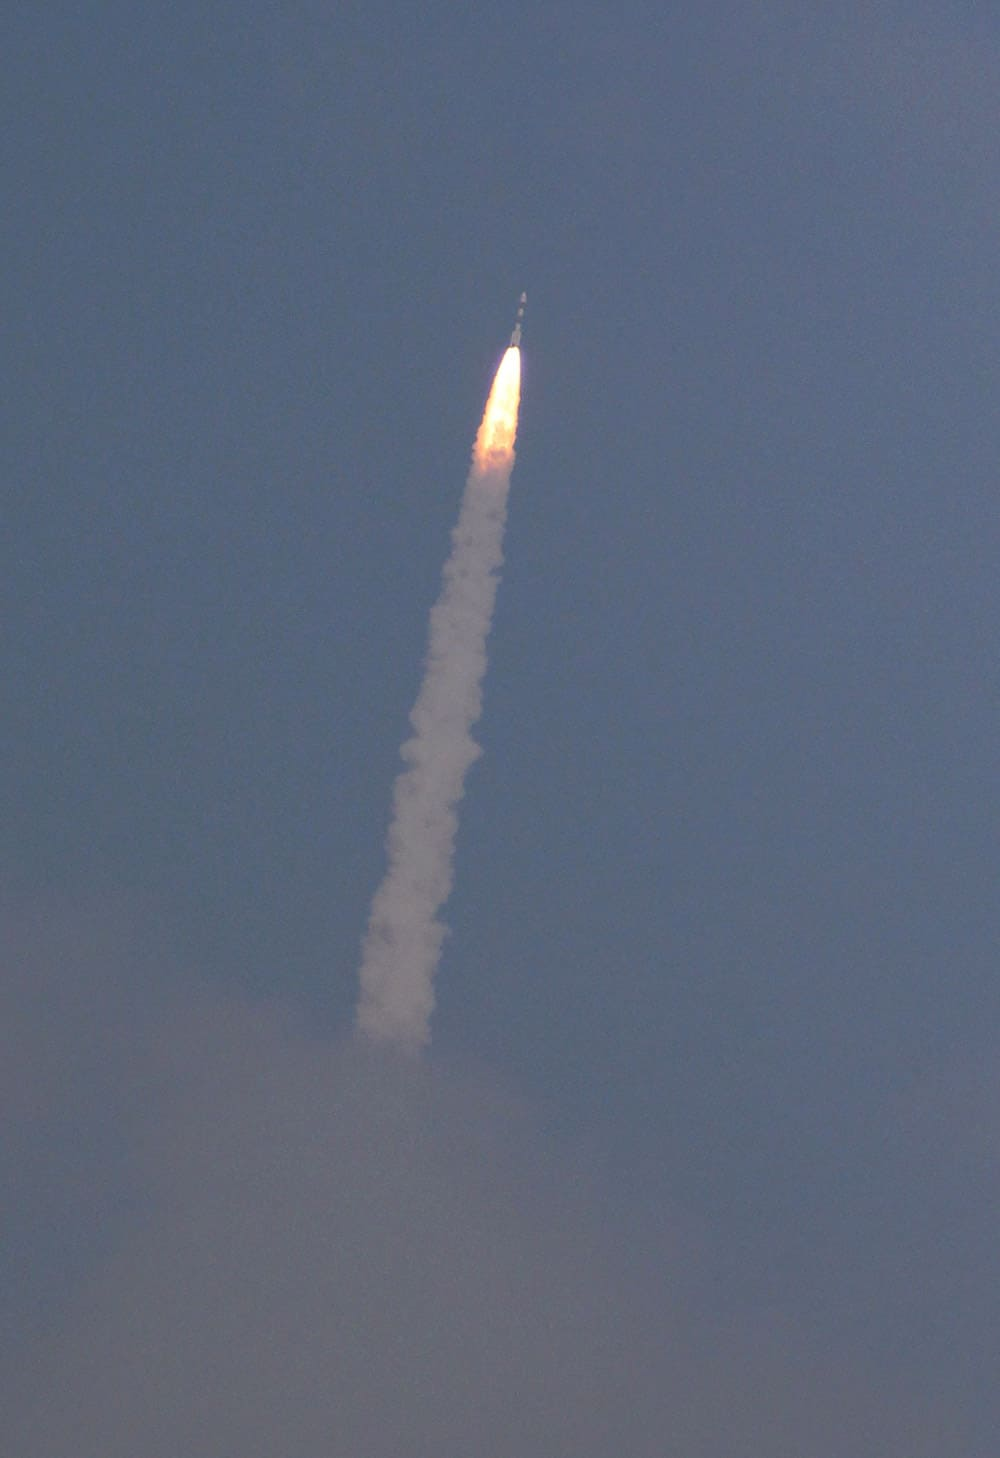 The Polar Satellite Launch Vehicle (PSLV-C25) rocket lifts off carrying India`s Mars spacecraft from the east-coast island of Sriharikota, India.